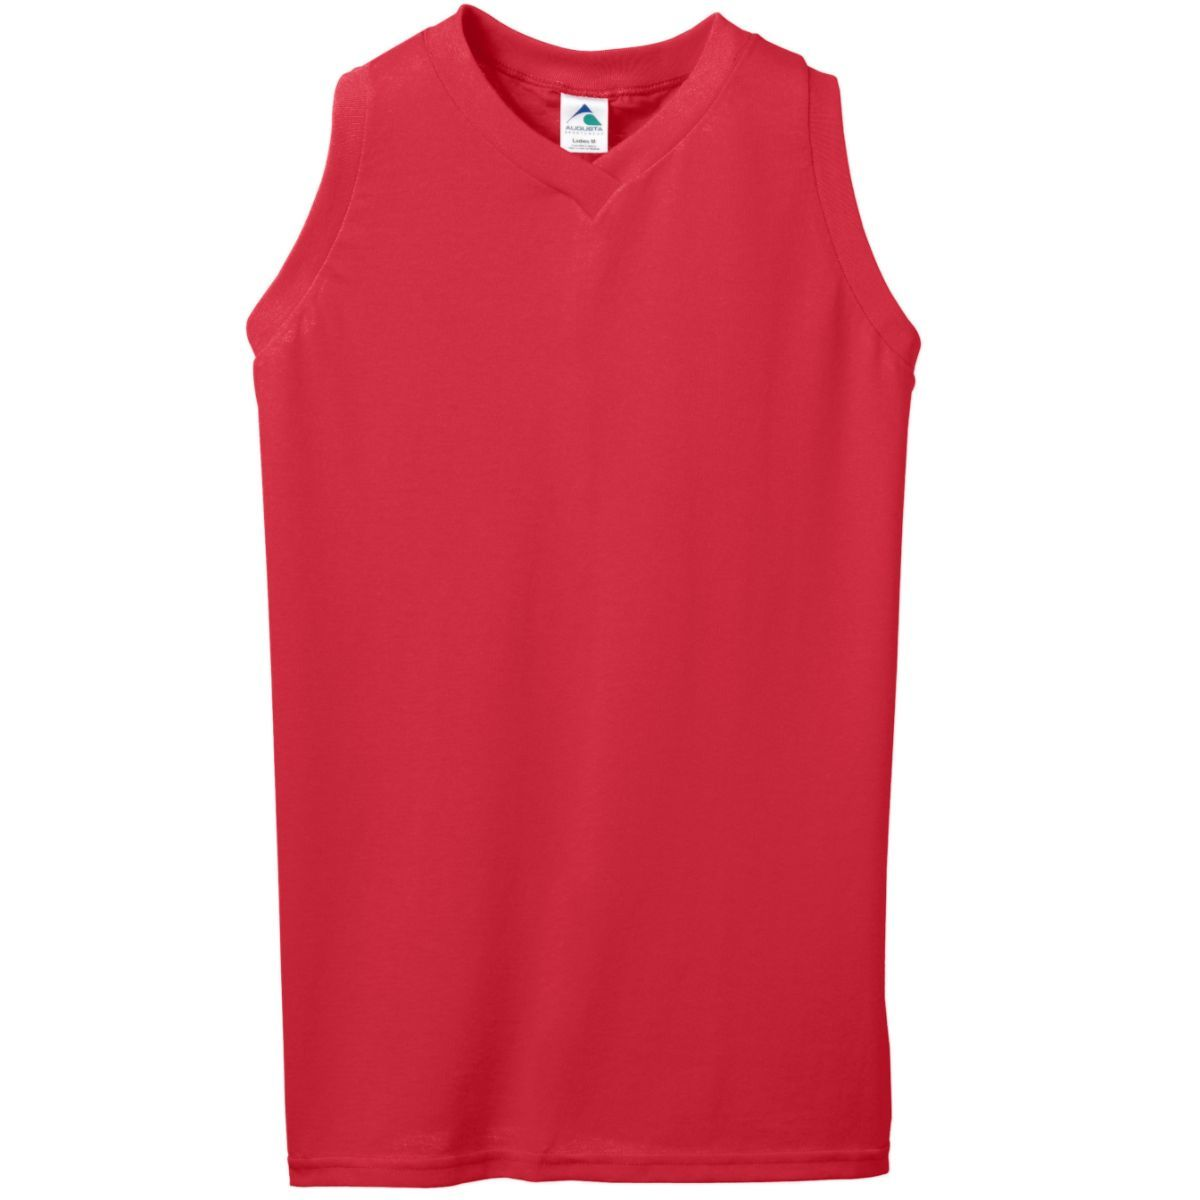 Ladies Sleeveless V-Neck Poly/Cotton Jersey - RED